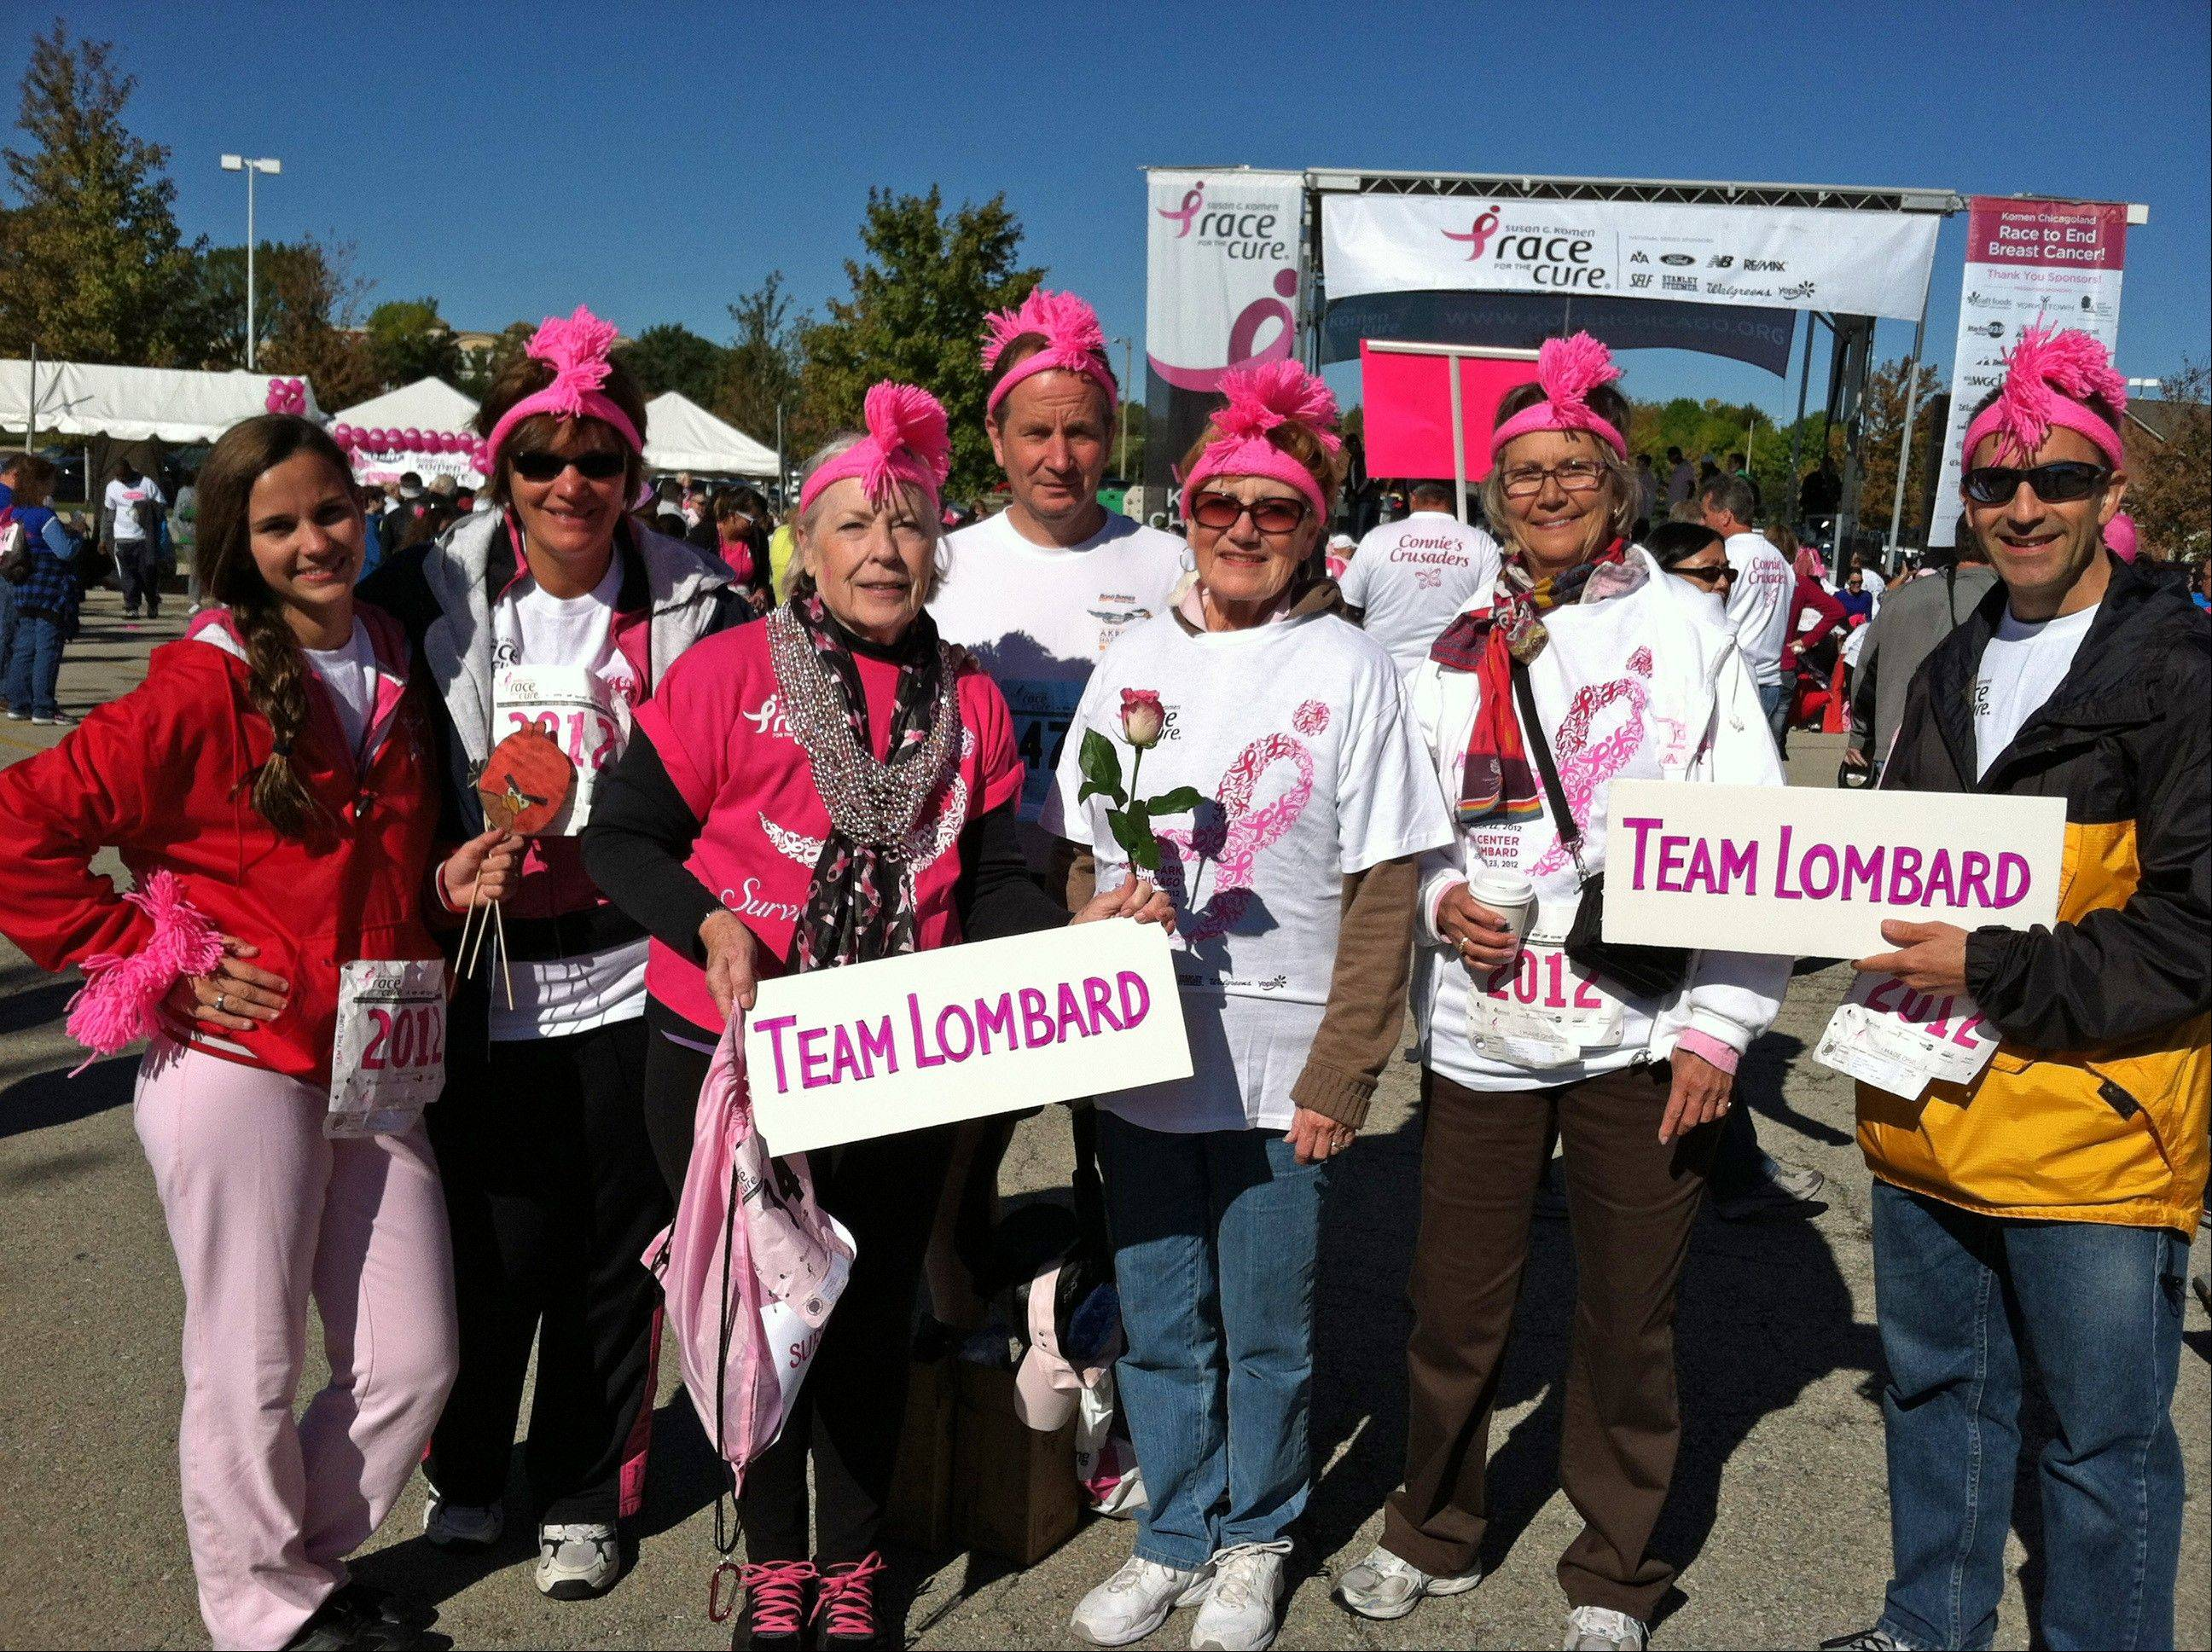 Team Lombard members Kendall Kott, Joelyn Kott, Marymae Meyer, Bill Heniff, Eileen Mueller, Rose Roth and Brian Diskin were among a group of 24 who raised $4,283.66 for the Susan G. Komen Race for the Cure Sunday, Sept. 23, in Lombard.